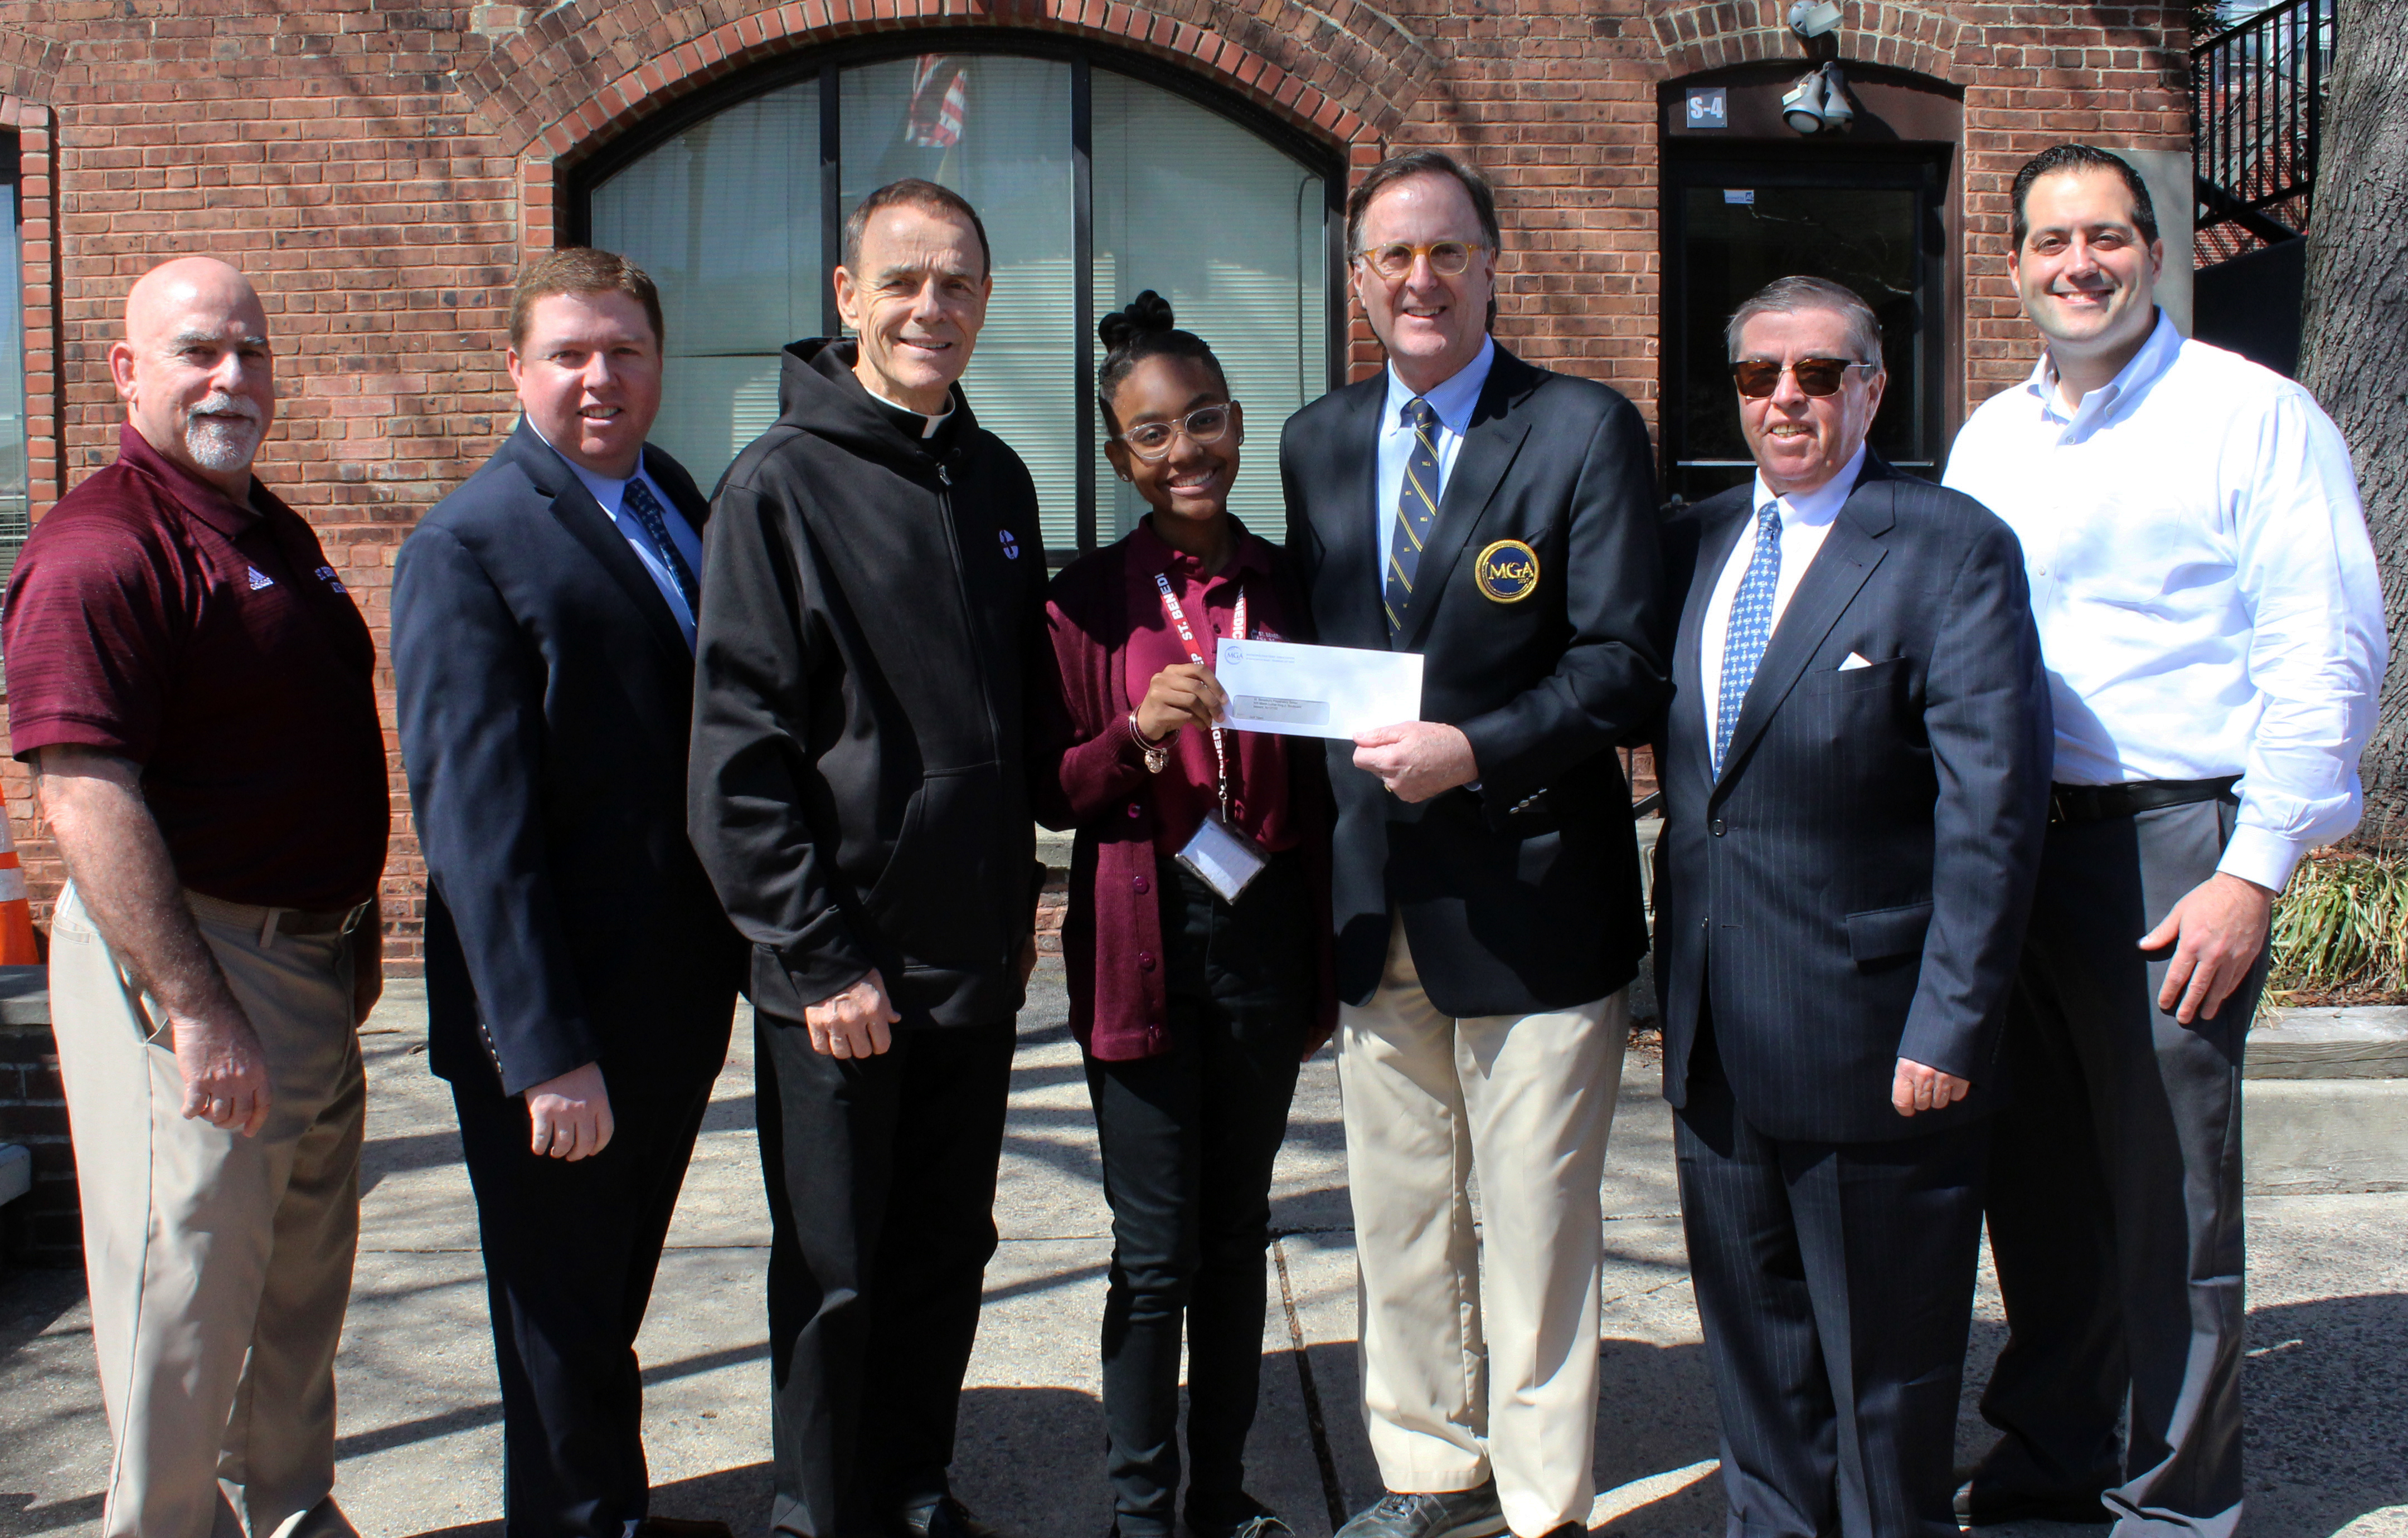 Gray Bee golf team receives support from the Boff Foundation and the MGA